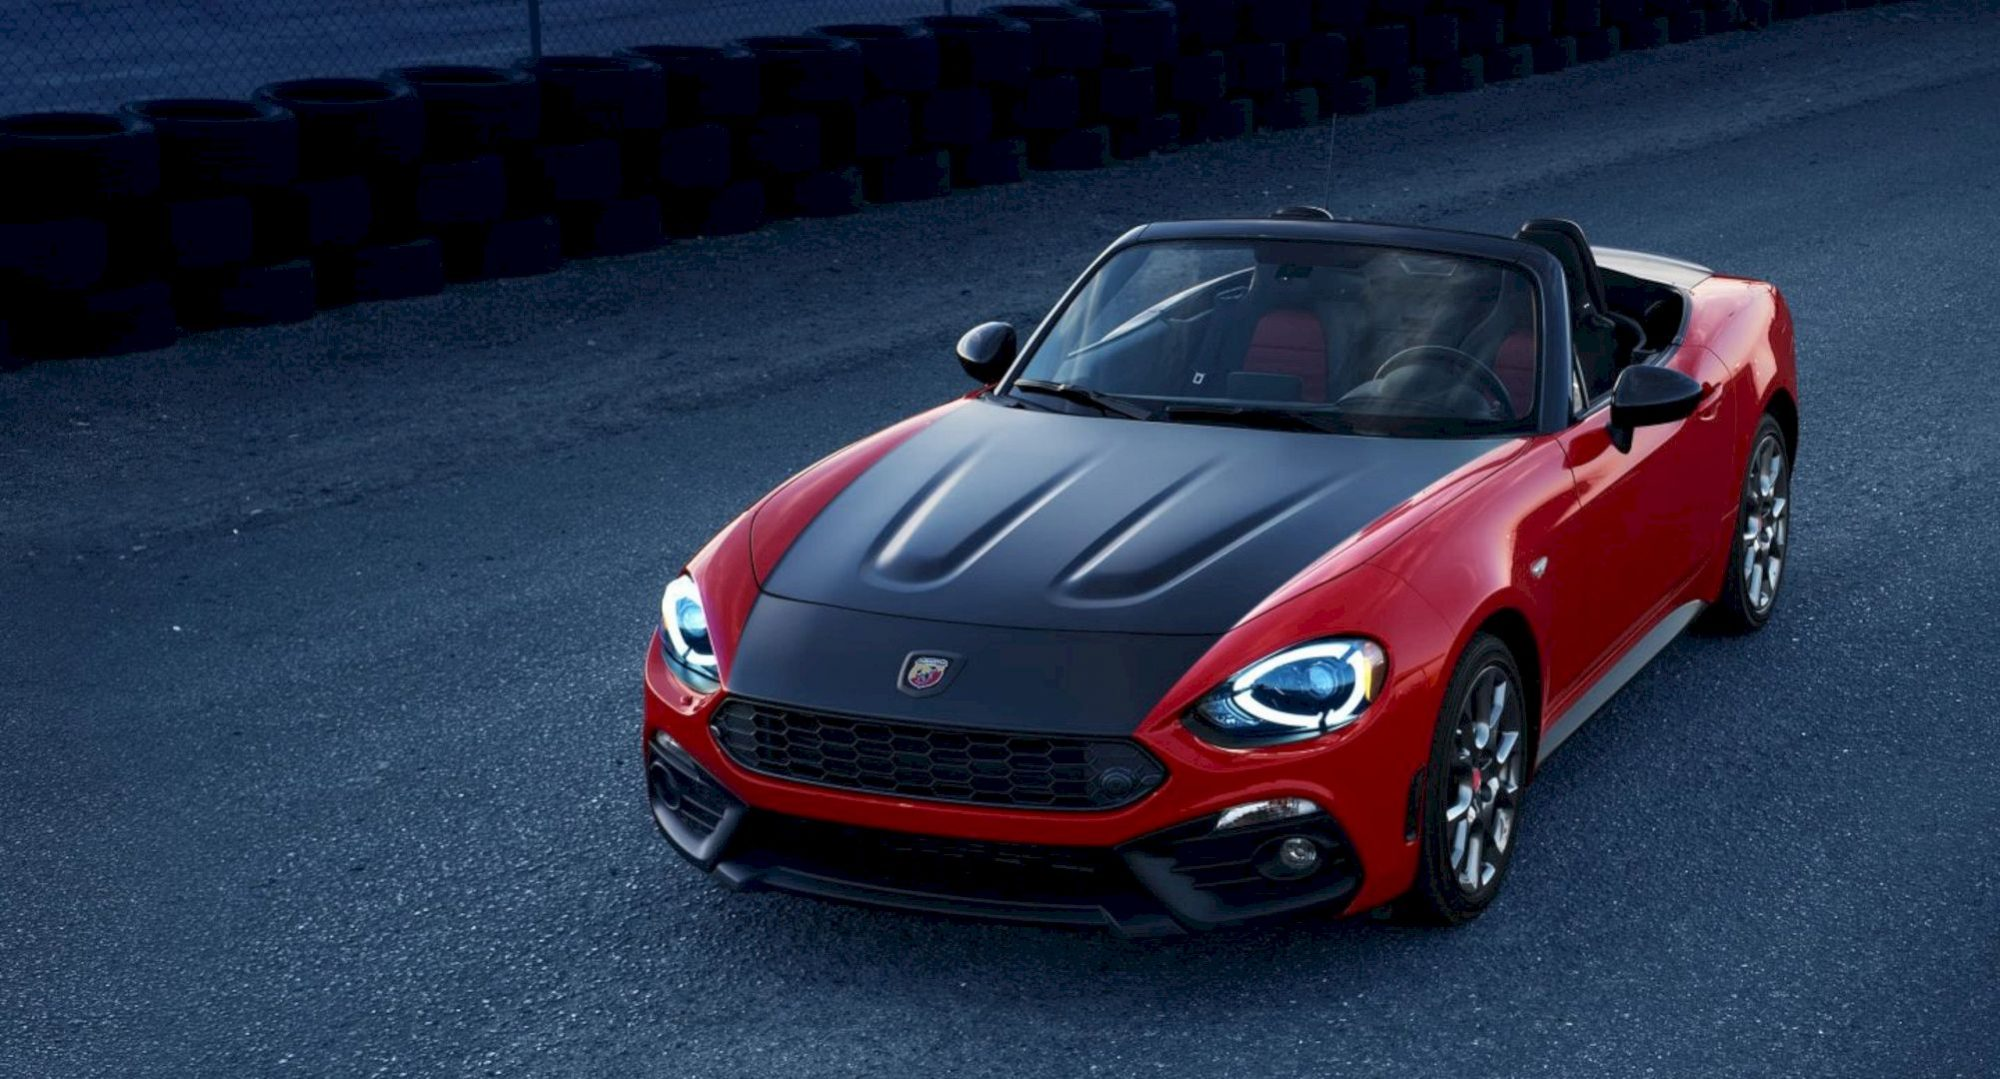 2017 Fiat Abarth Spider: Performance is In The Air